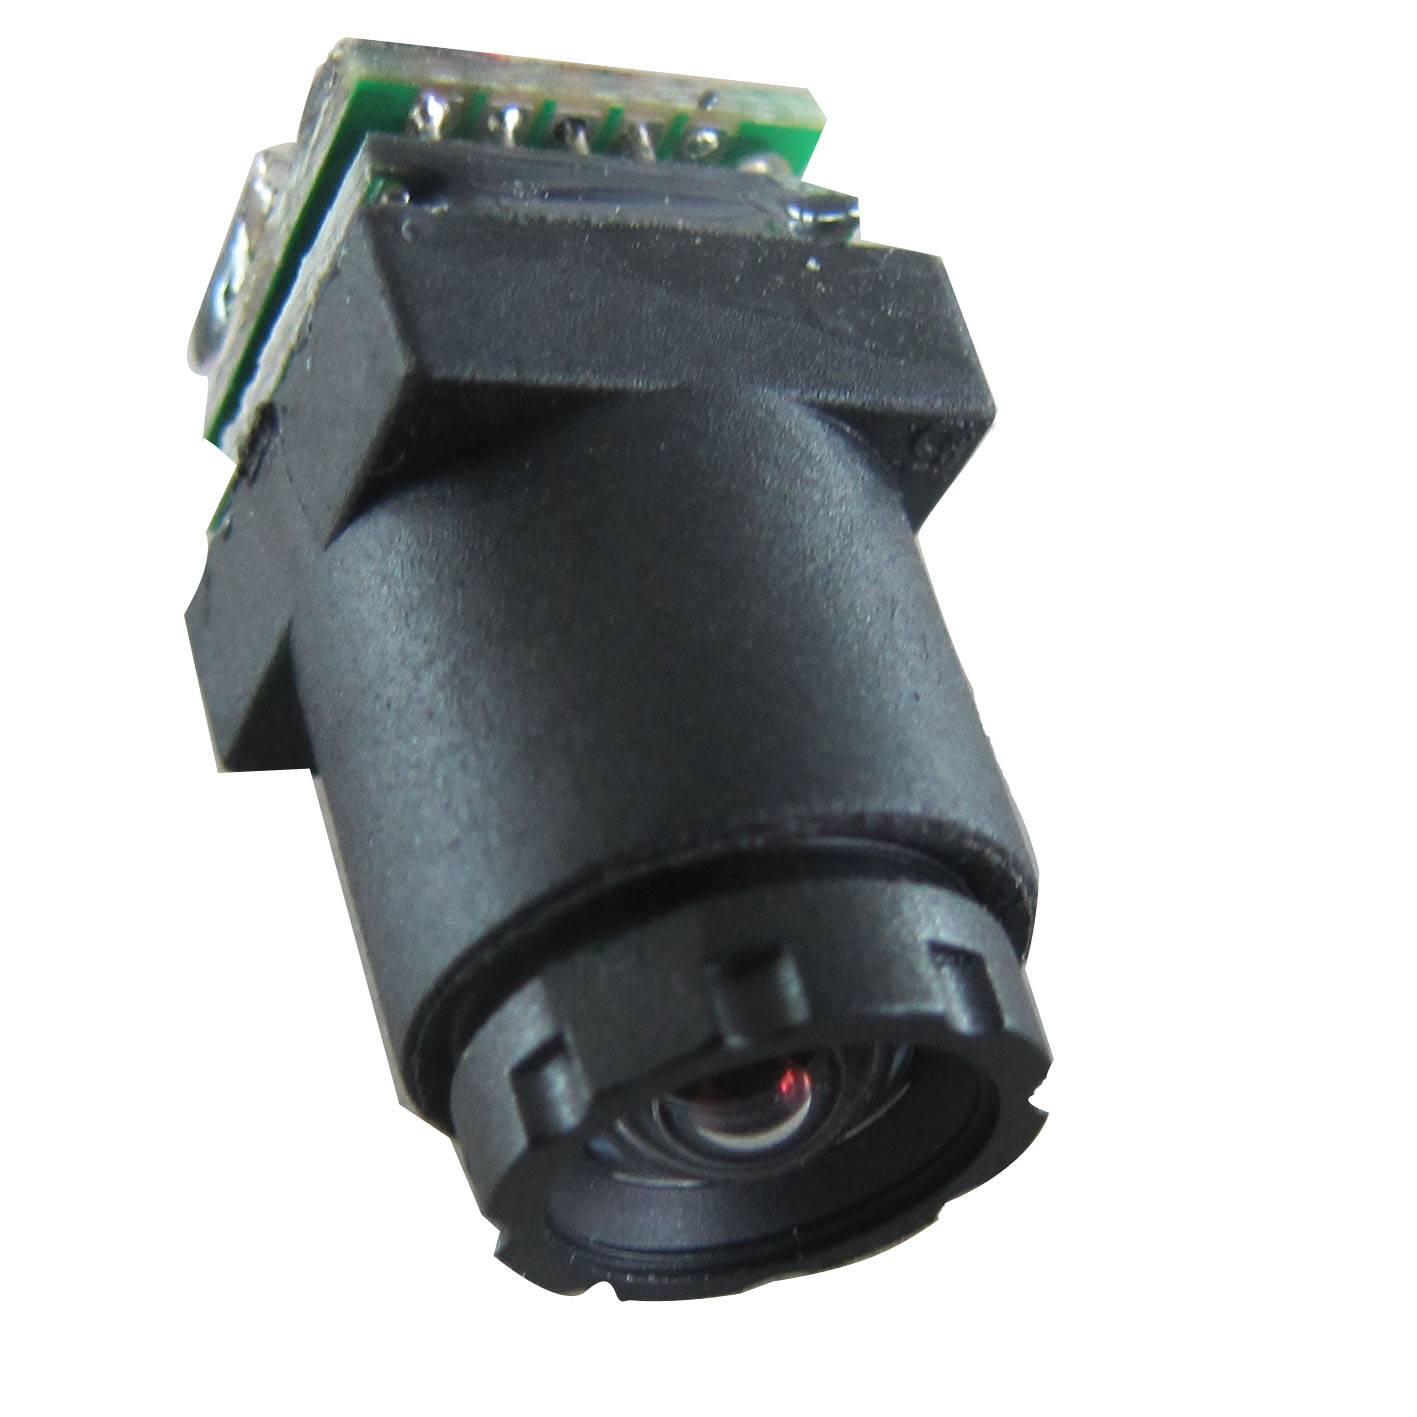 mini cctv camera for FPV, Drone and Toy